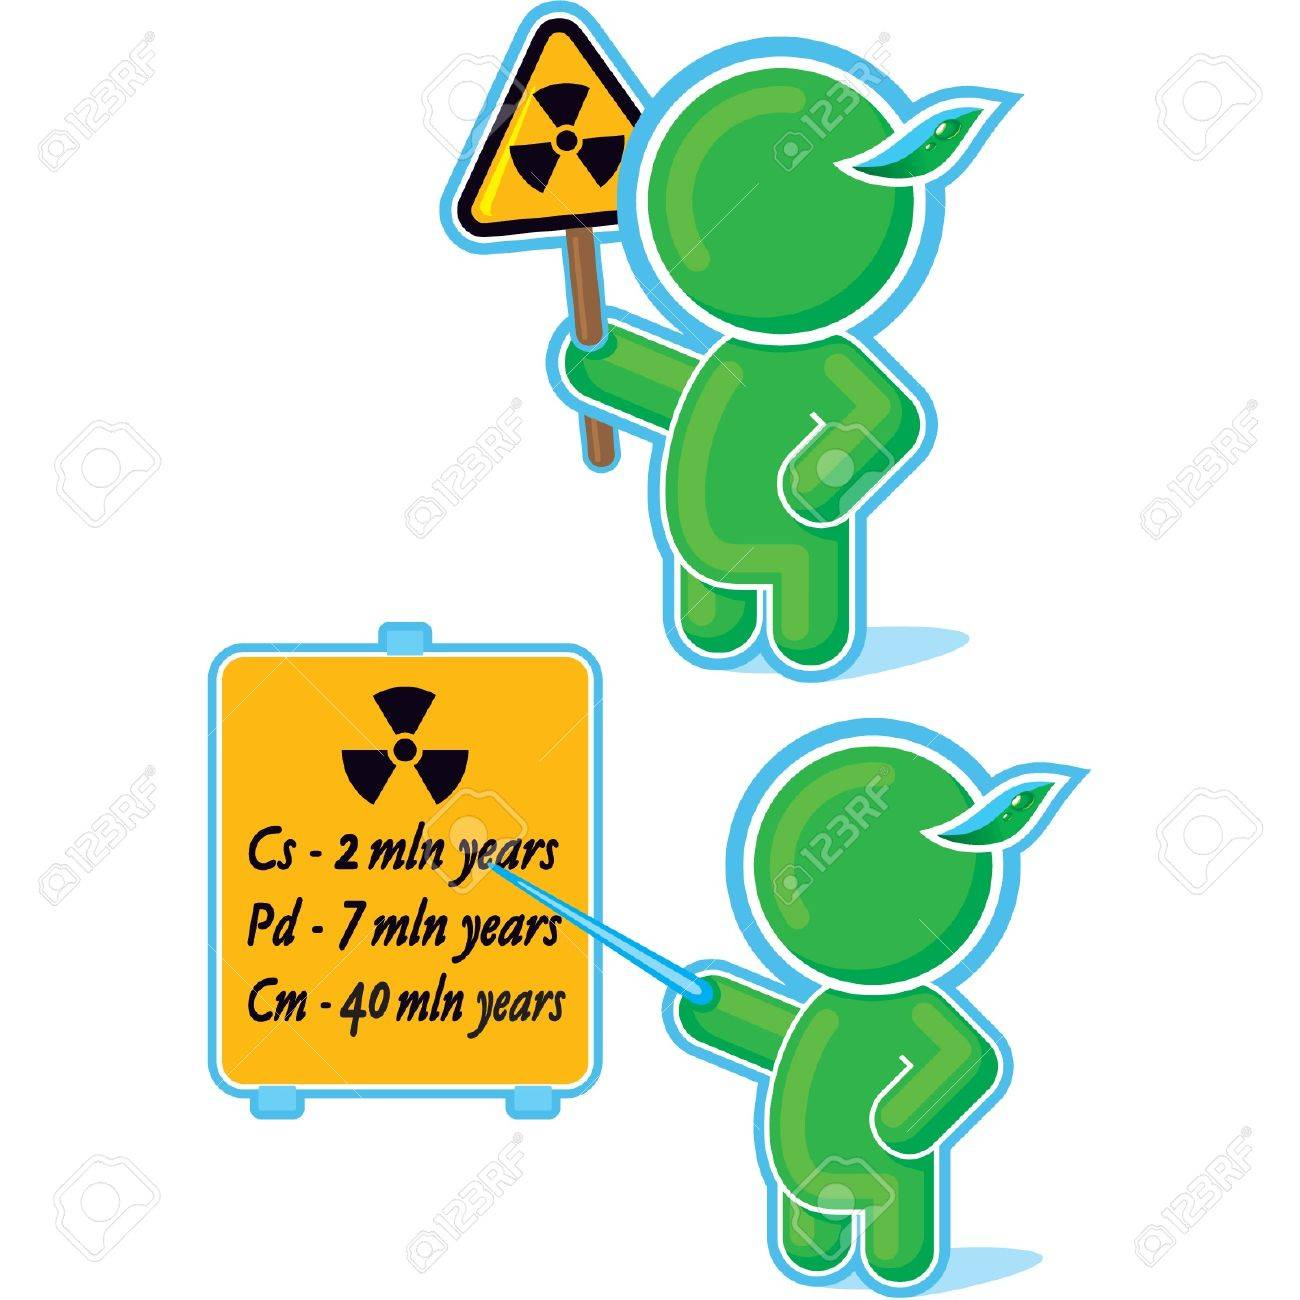 Green Hero with Radiation Warning Sign Stock Vector - 11113923